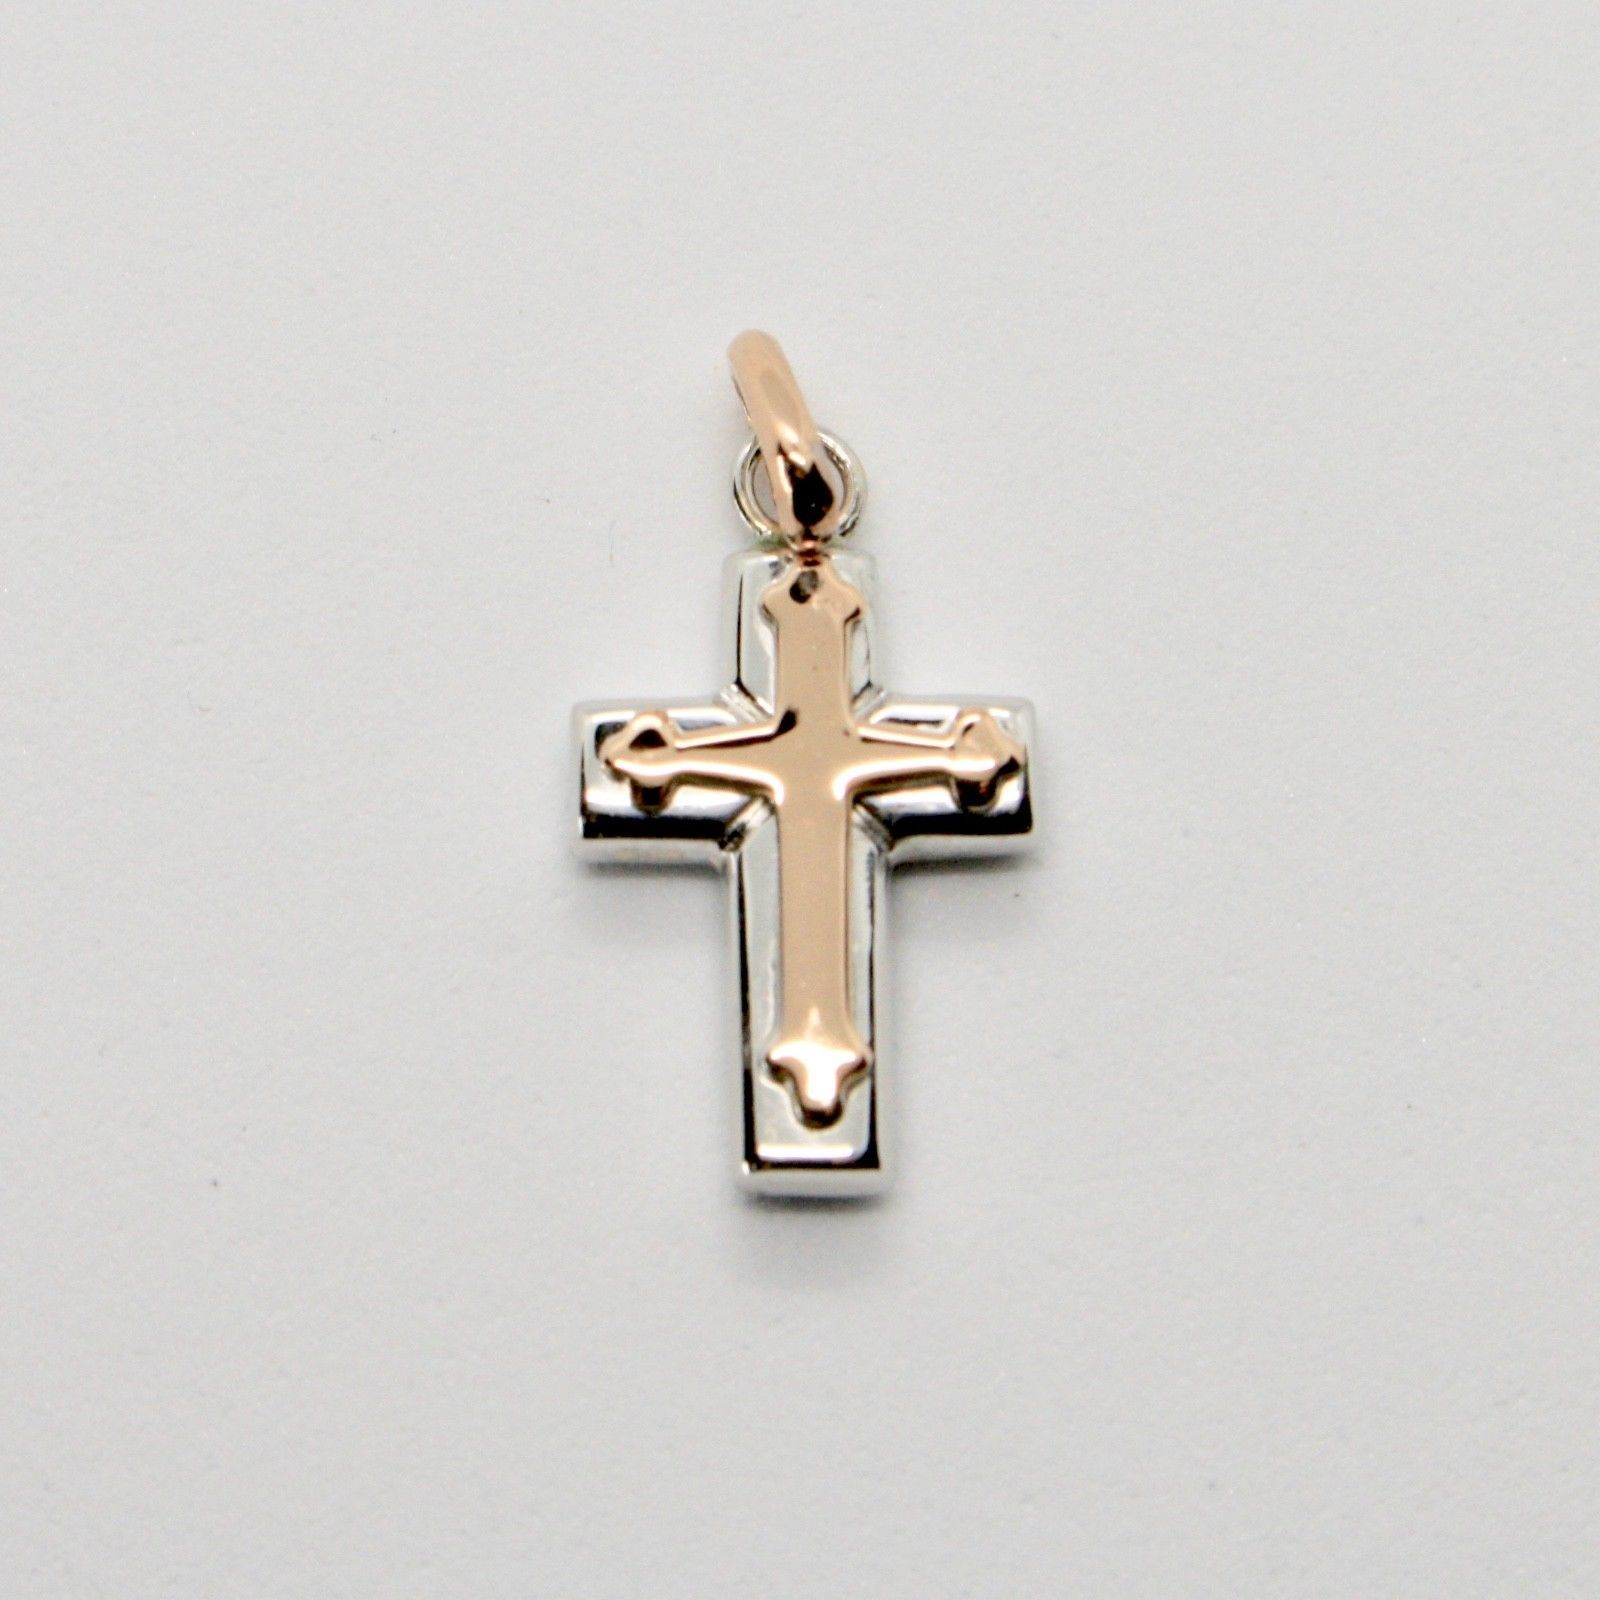 18K WHITE AND PINK ROSE GOLD CROSS STYLIZED VERY LUSTER MADE IN ITALY 1 INCHES